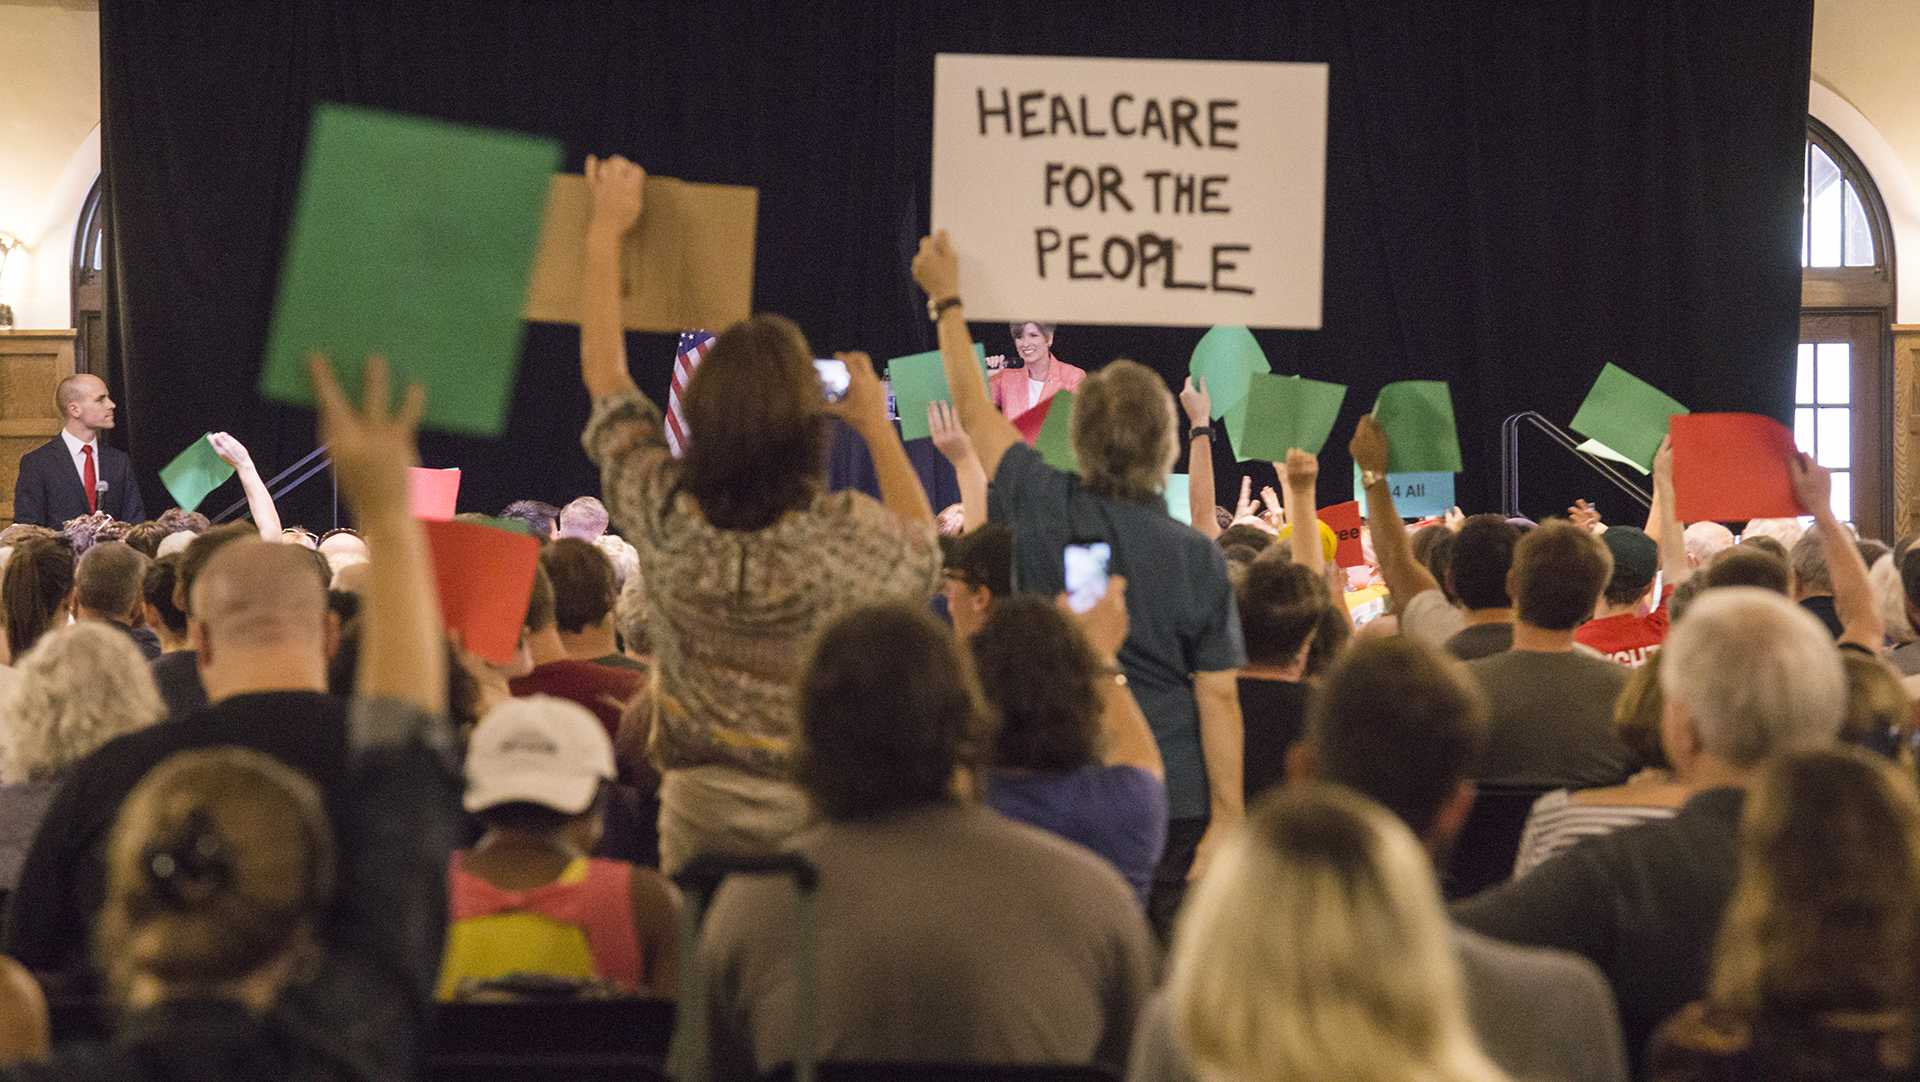 Participants display their signs in protest to Senator Joni Ernst's policy proposal at a Town Hall meeting in the Iowa Memorial Union on Friday, Sept. 22, 2017. (James Year/The Daily Iowan)